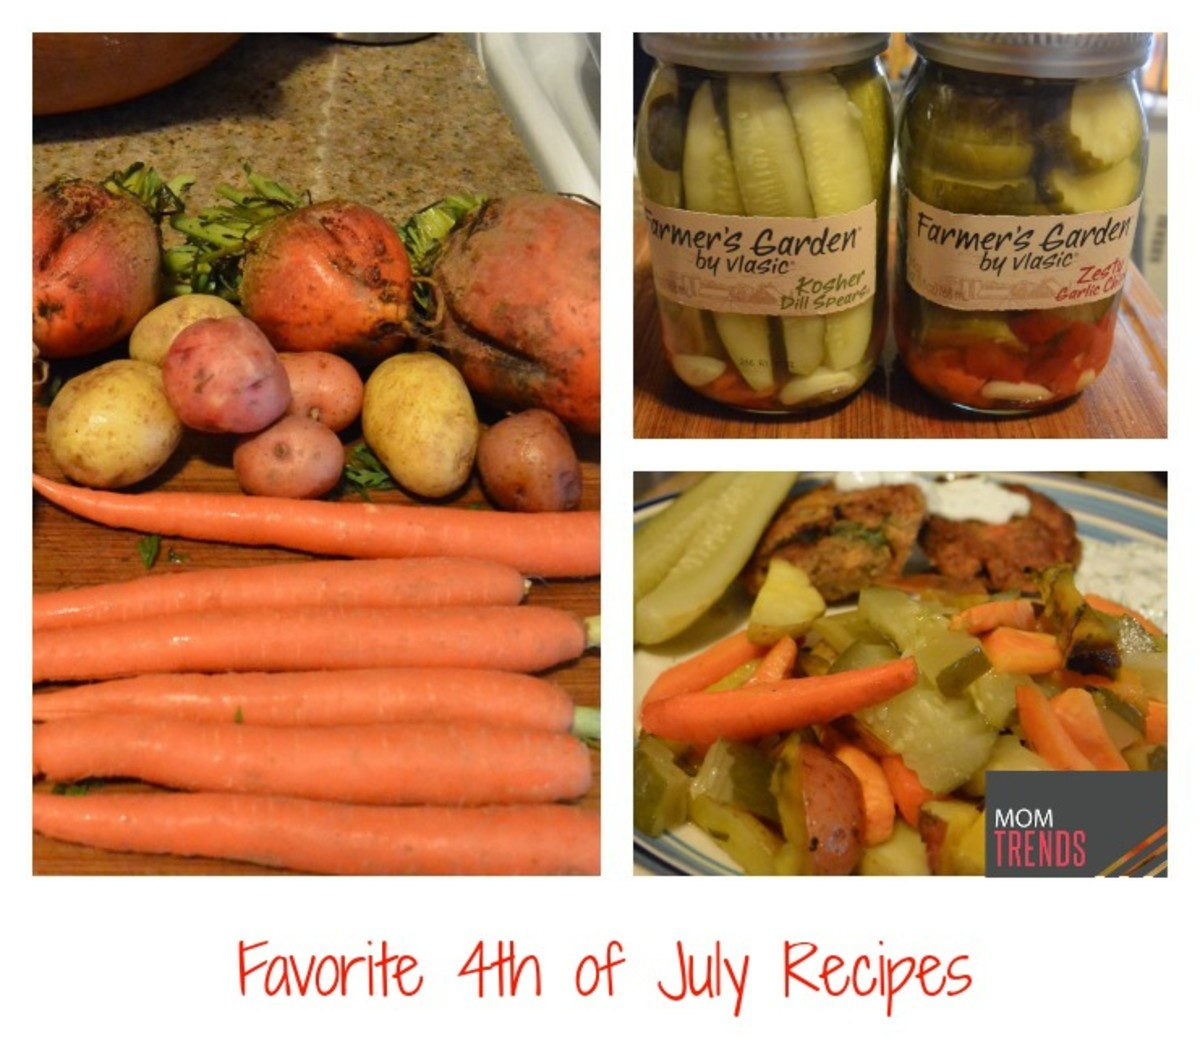 Favorite 4th of July Recipes